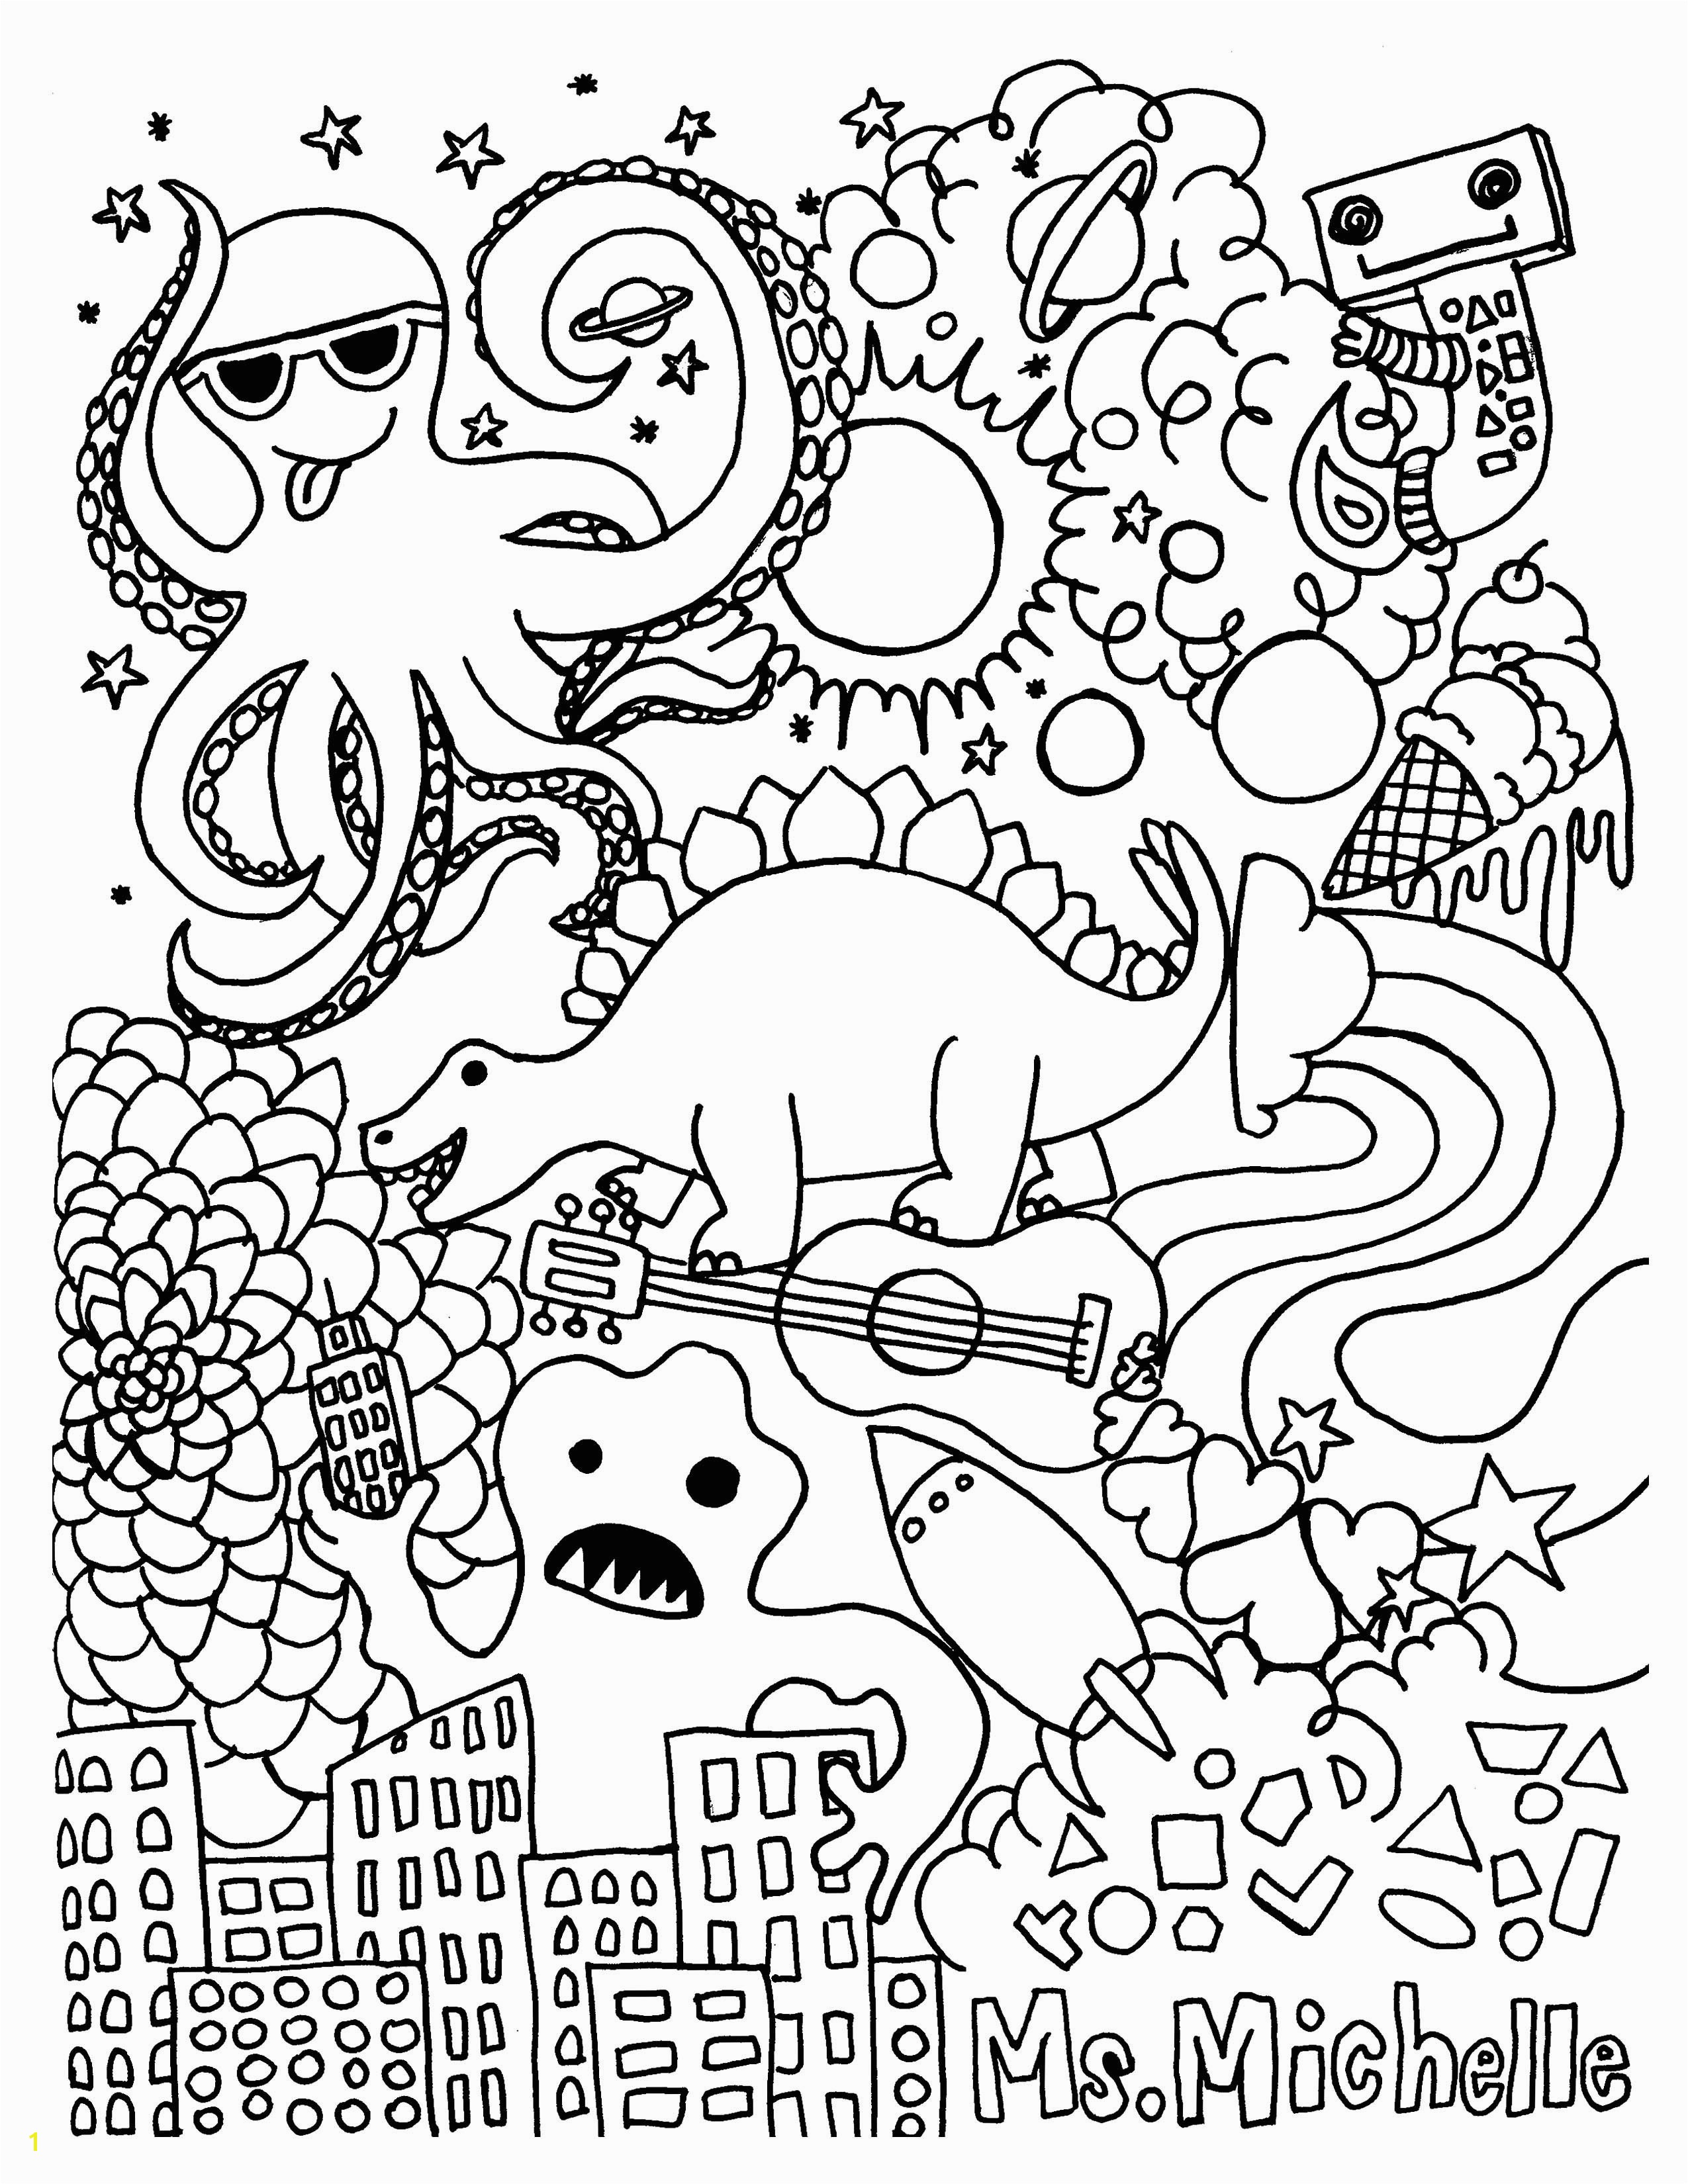 Carcharodontosaurus Coloring Page New Free Cool Coloring Pages for Adults Awesome Engaging Fall Coloring Pics